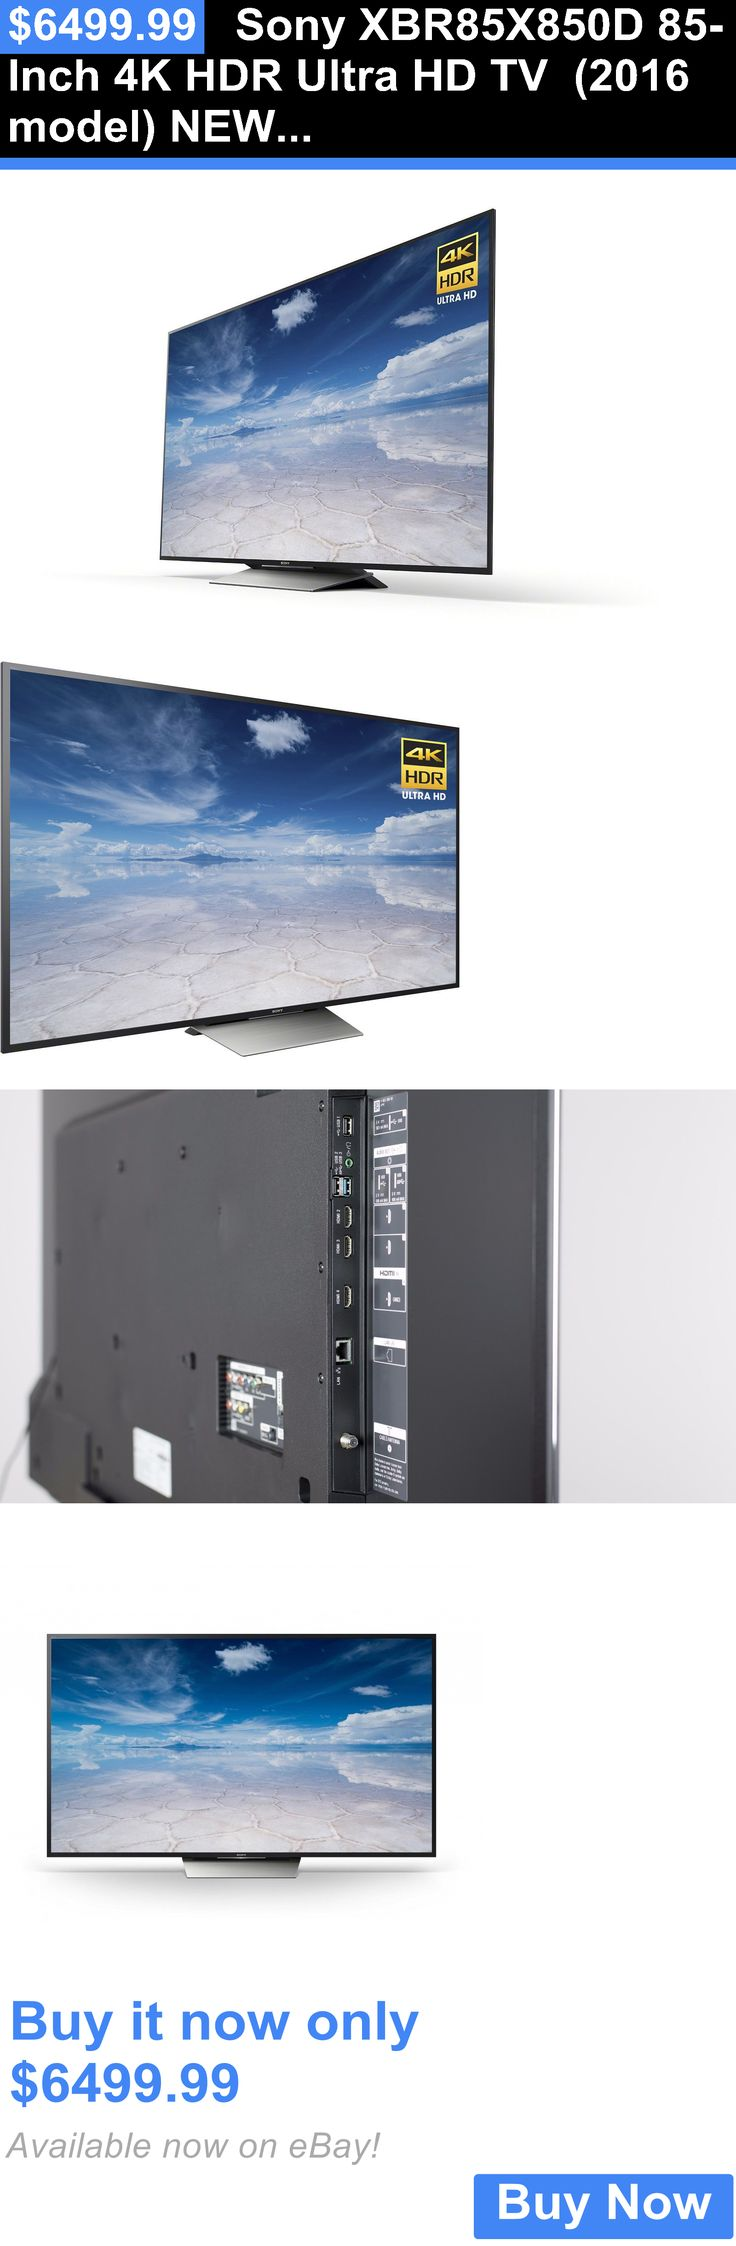 Televisions: Sony Xbr85x850d 85-Inch 4K Hdr Ultra Hd Tv (2016 Model) New - Sony Warranty BUY IT NOW ONLY: $6499.99